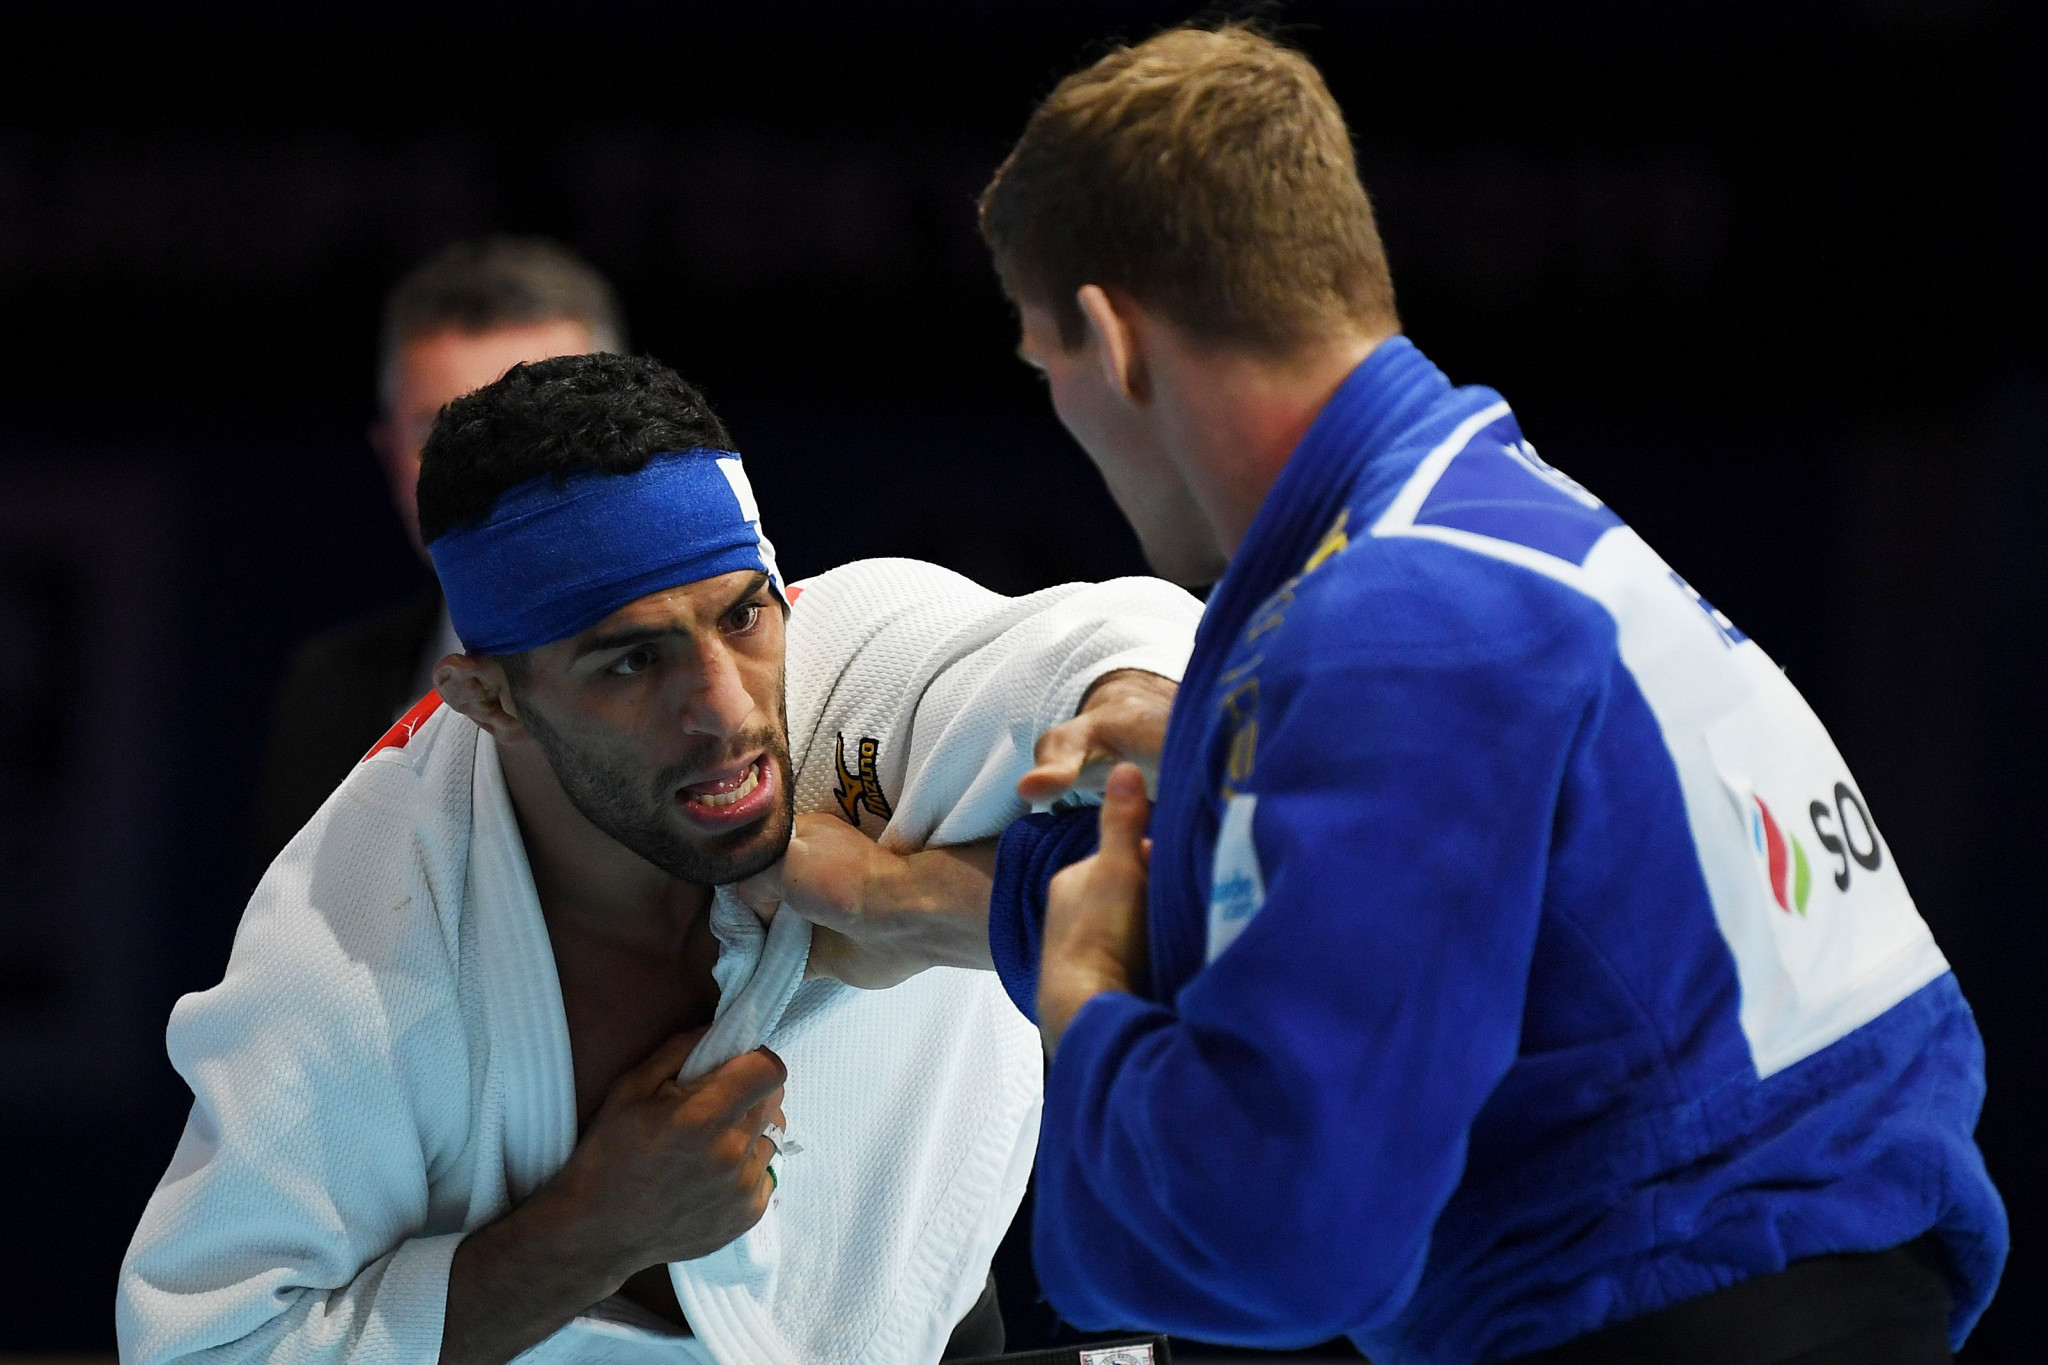 Iranian seeking asylum after Government threats to lose at World Judo Championships